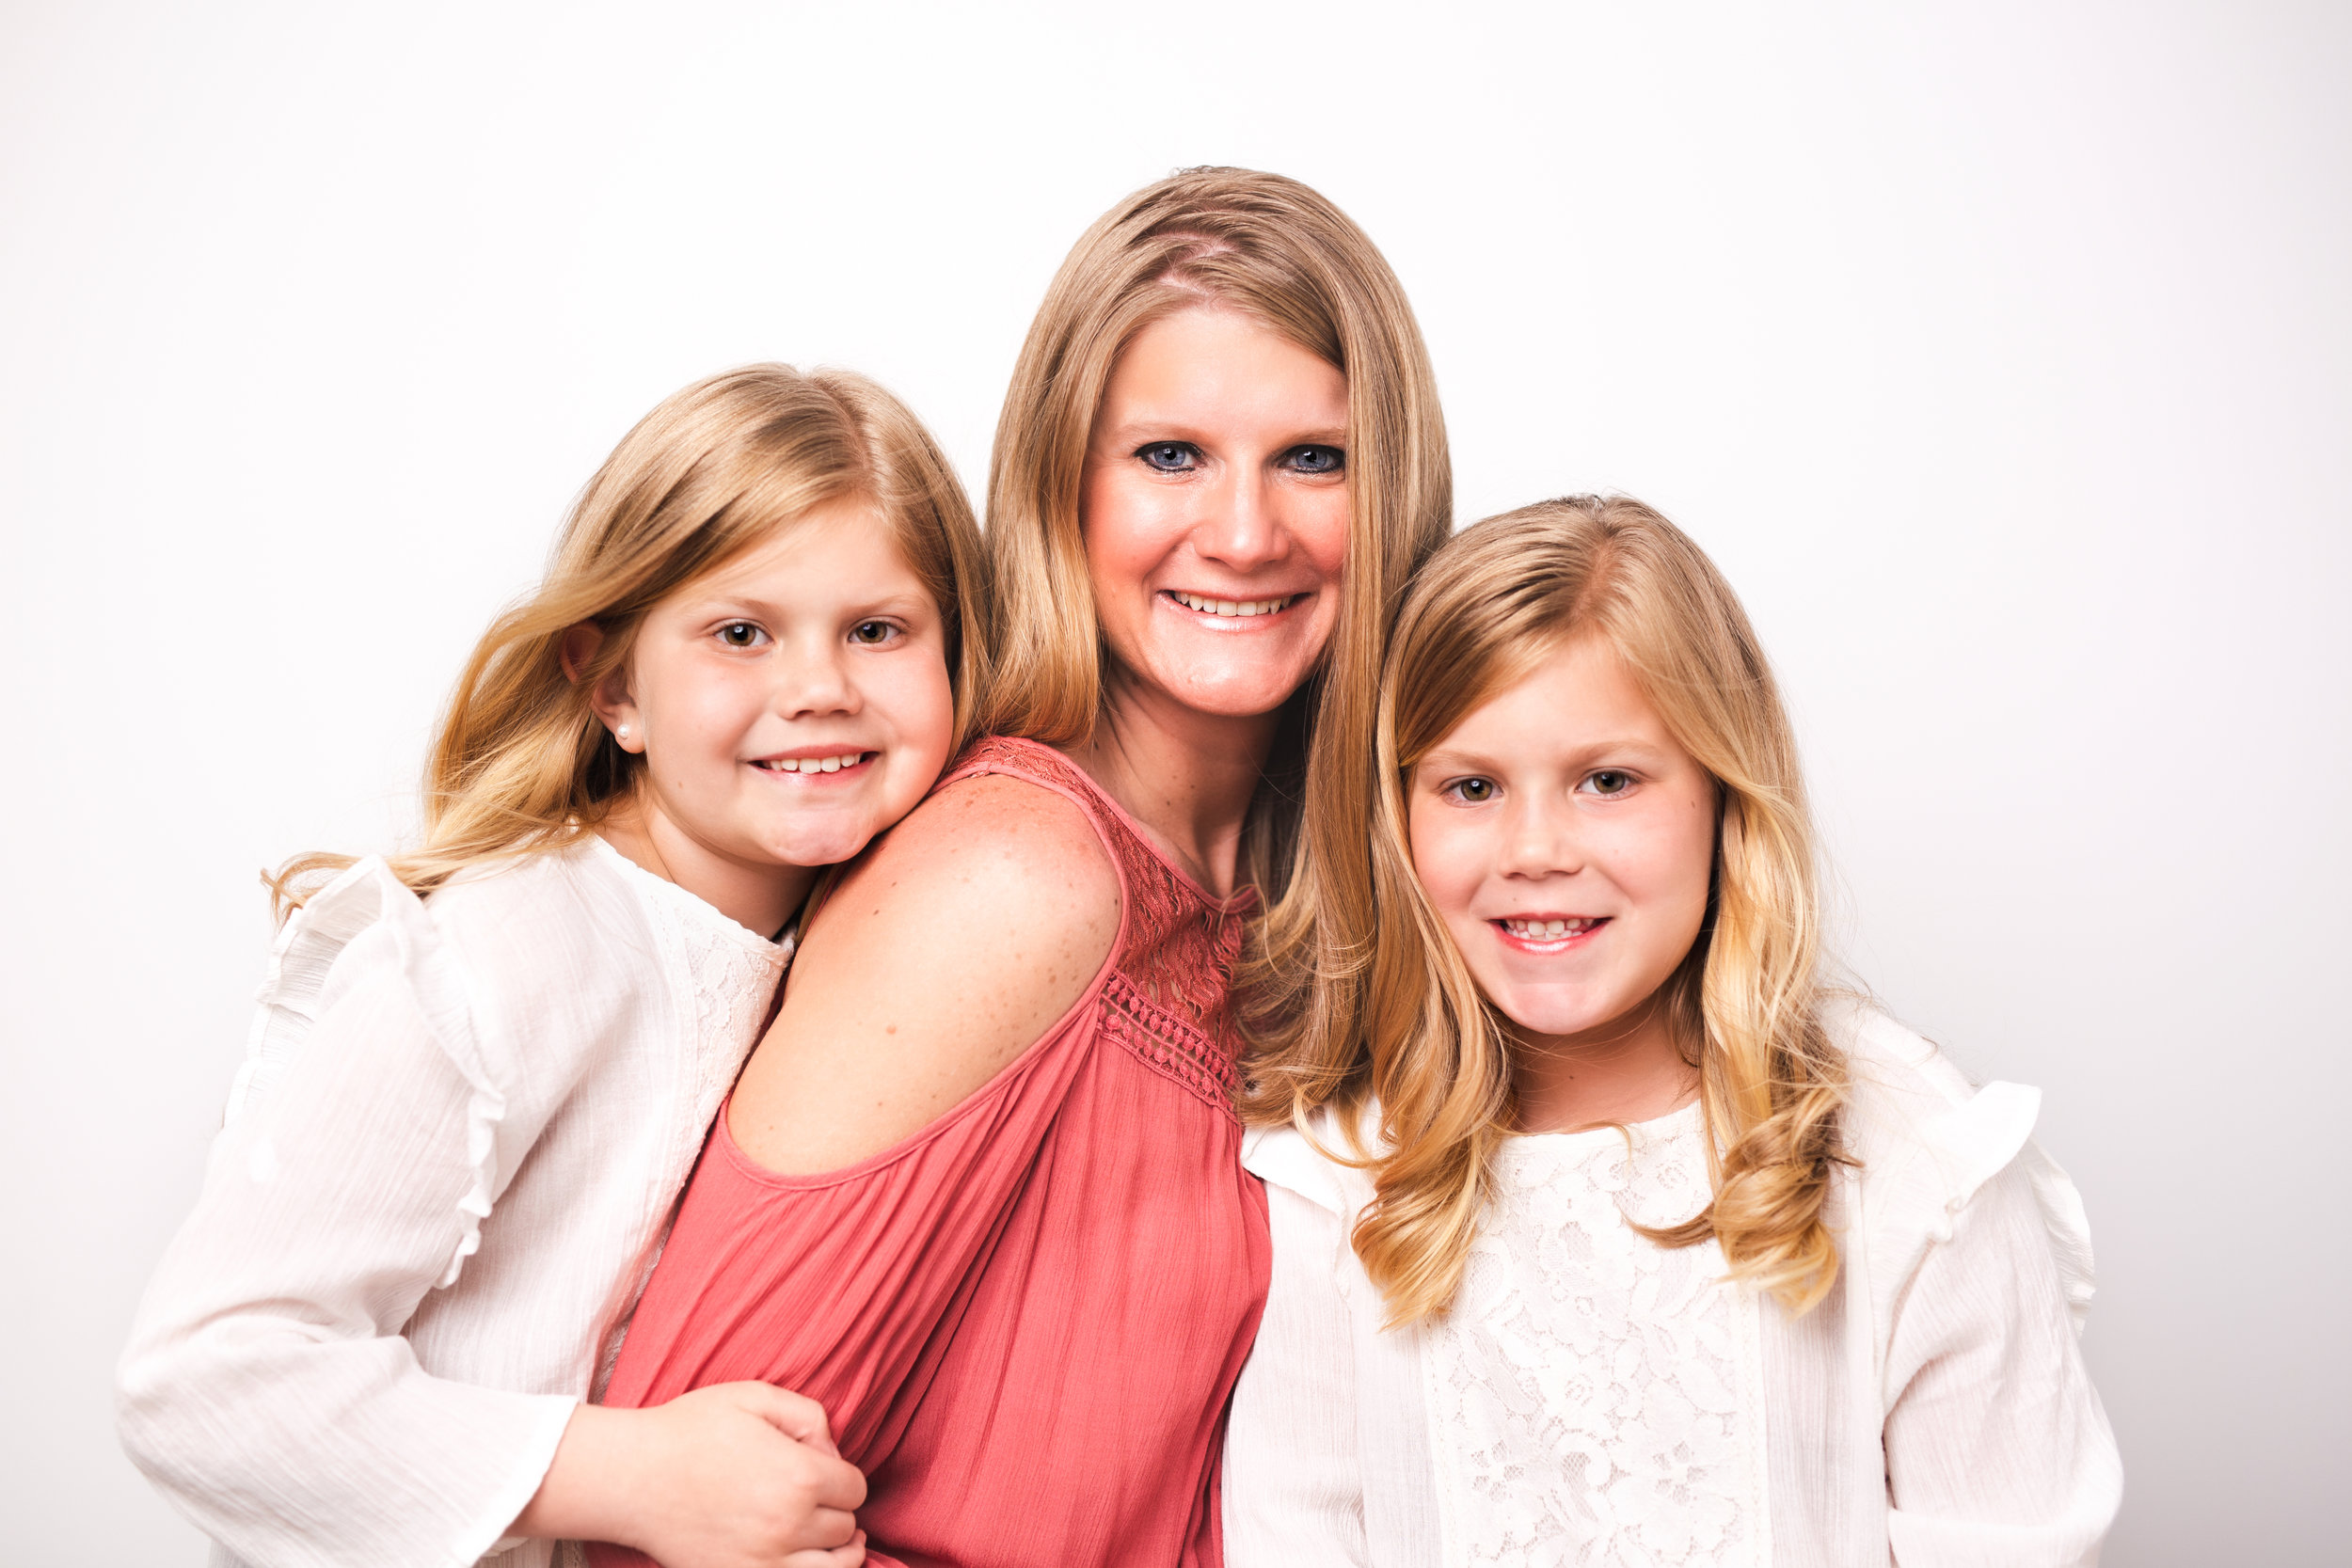 jamie_leonard_photography_family_kids_seniors_youngwood_women_ligonier_mount_pleasant_pa_family_photographer_studio.jpg